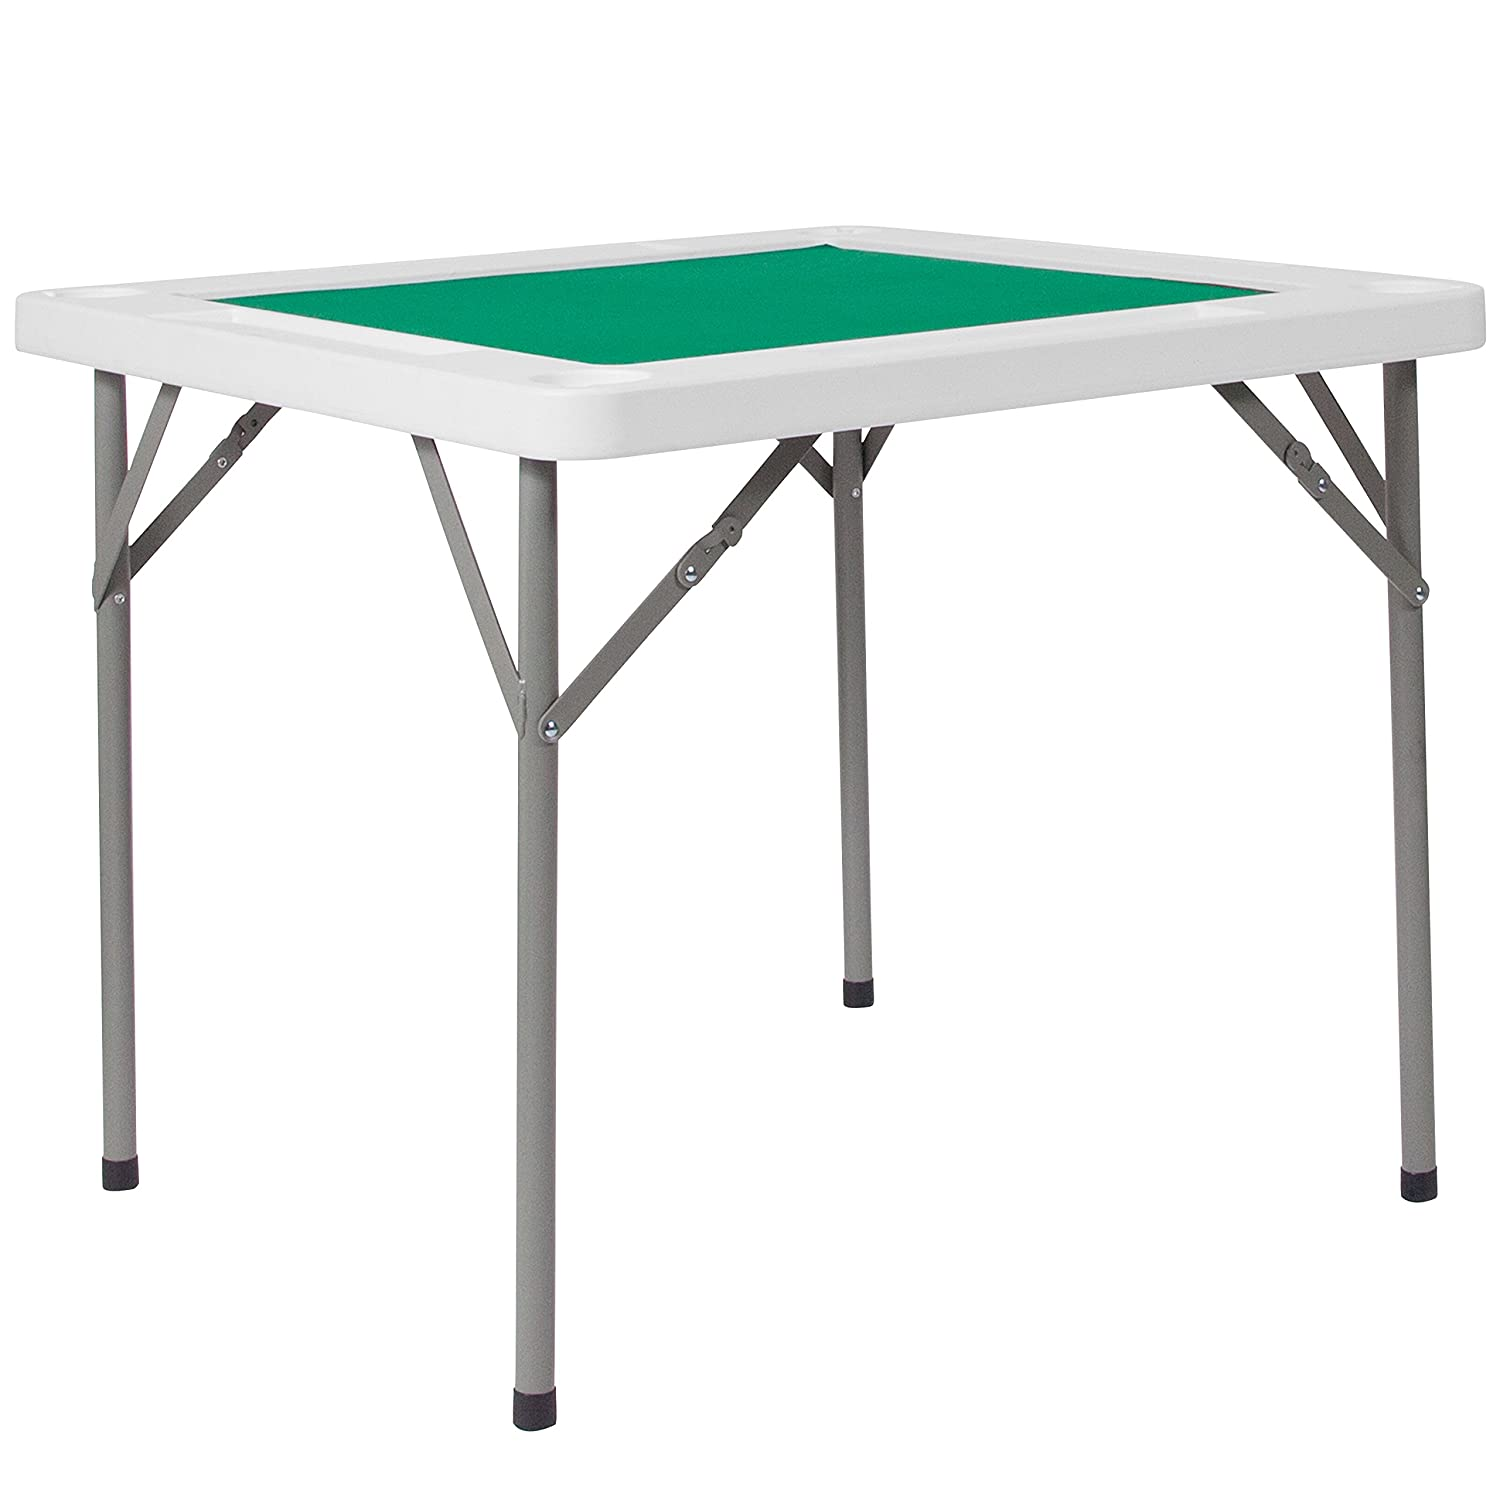 Flash Furniture 34.5'' Square Granite White Folding Game Table with Green Playing Surface DAD-MJZ-88-GG